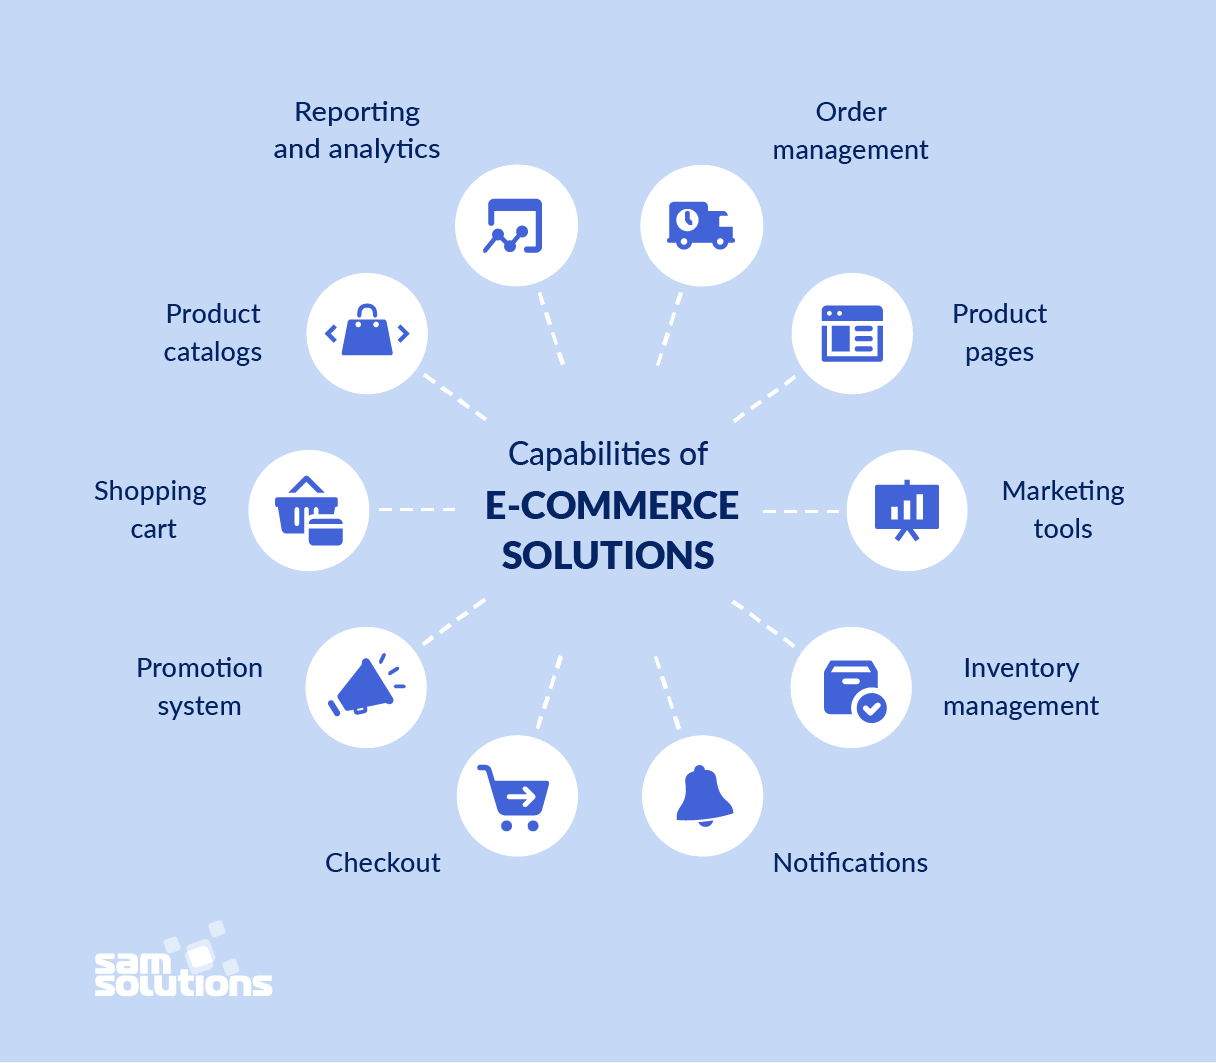 Capabilities-of-e-commerce-solutions-photo